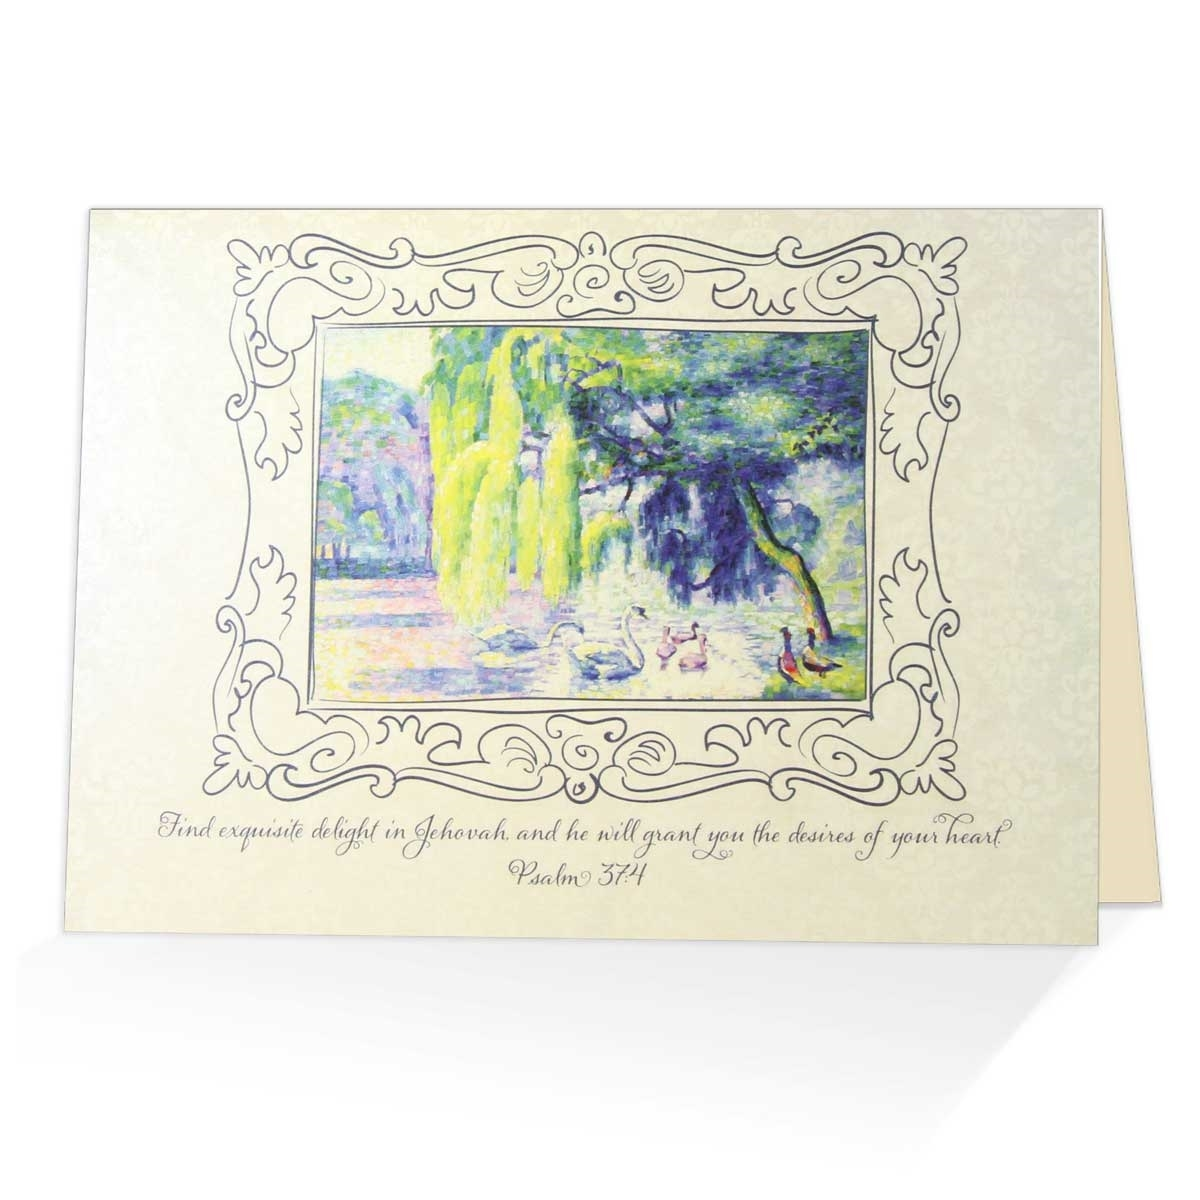 Christian blessings cards assorted blessings greeting cards retail kristyandbryce Image collections